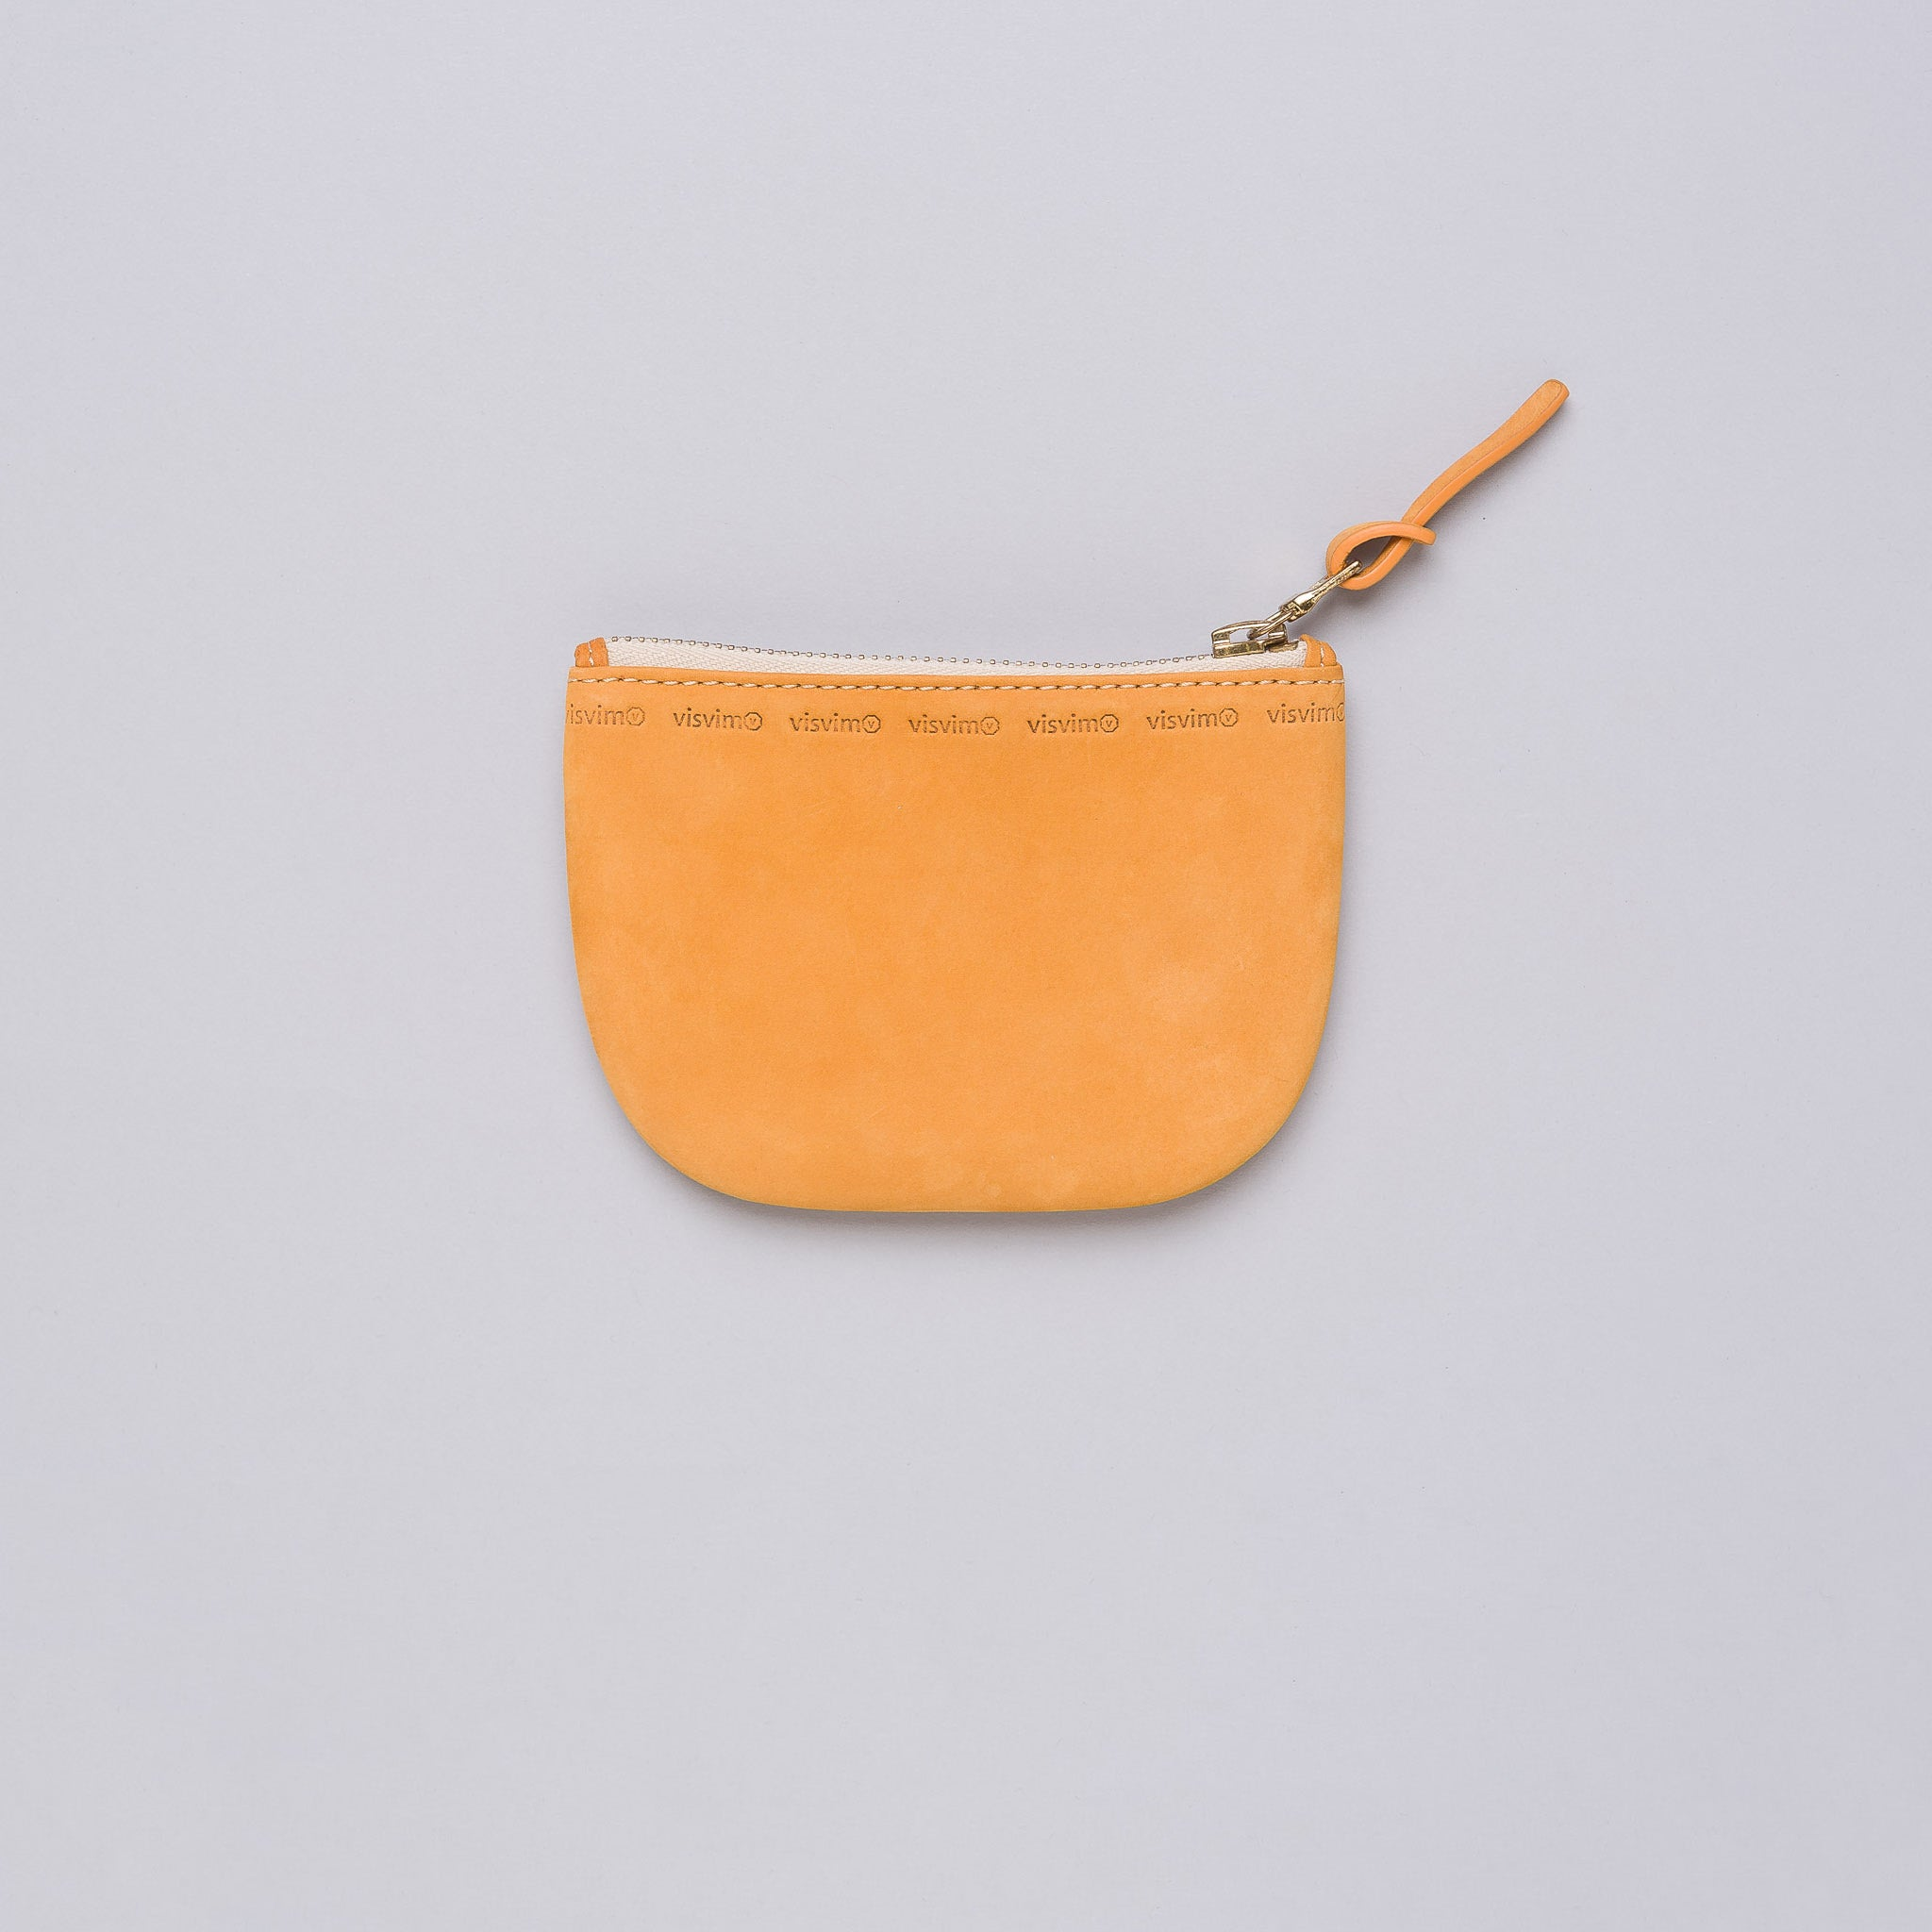 Veggie Wallet in Tangerine